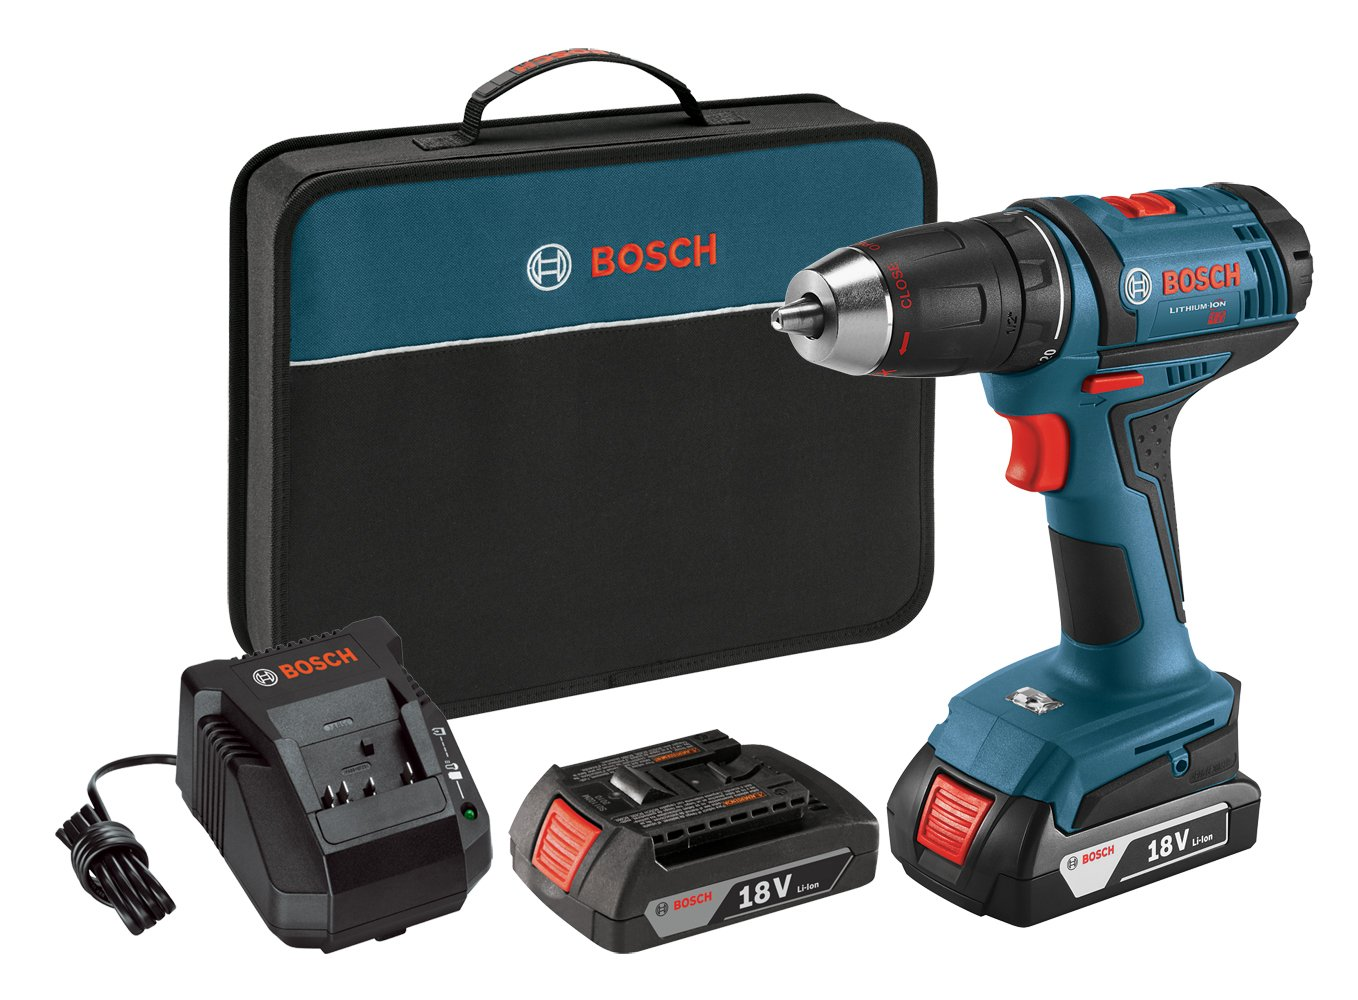 Bosch DDB181-02 Compact Tough Cordless Drill Black Friday Deals 2019